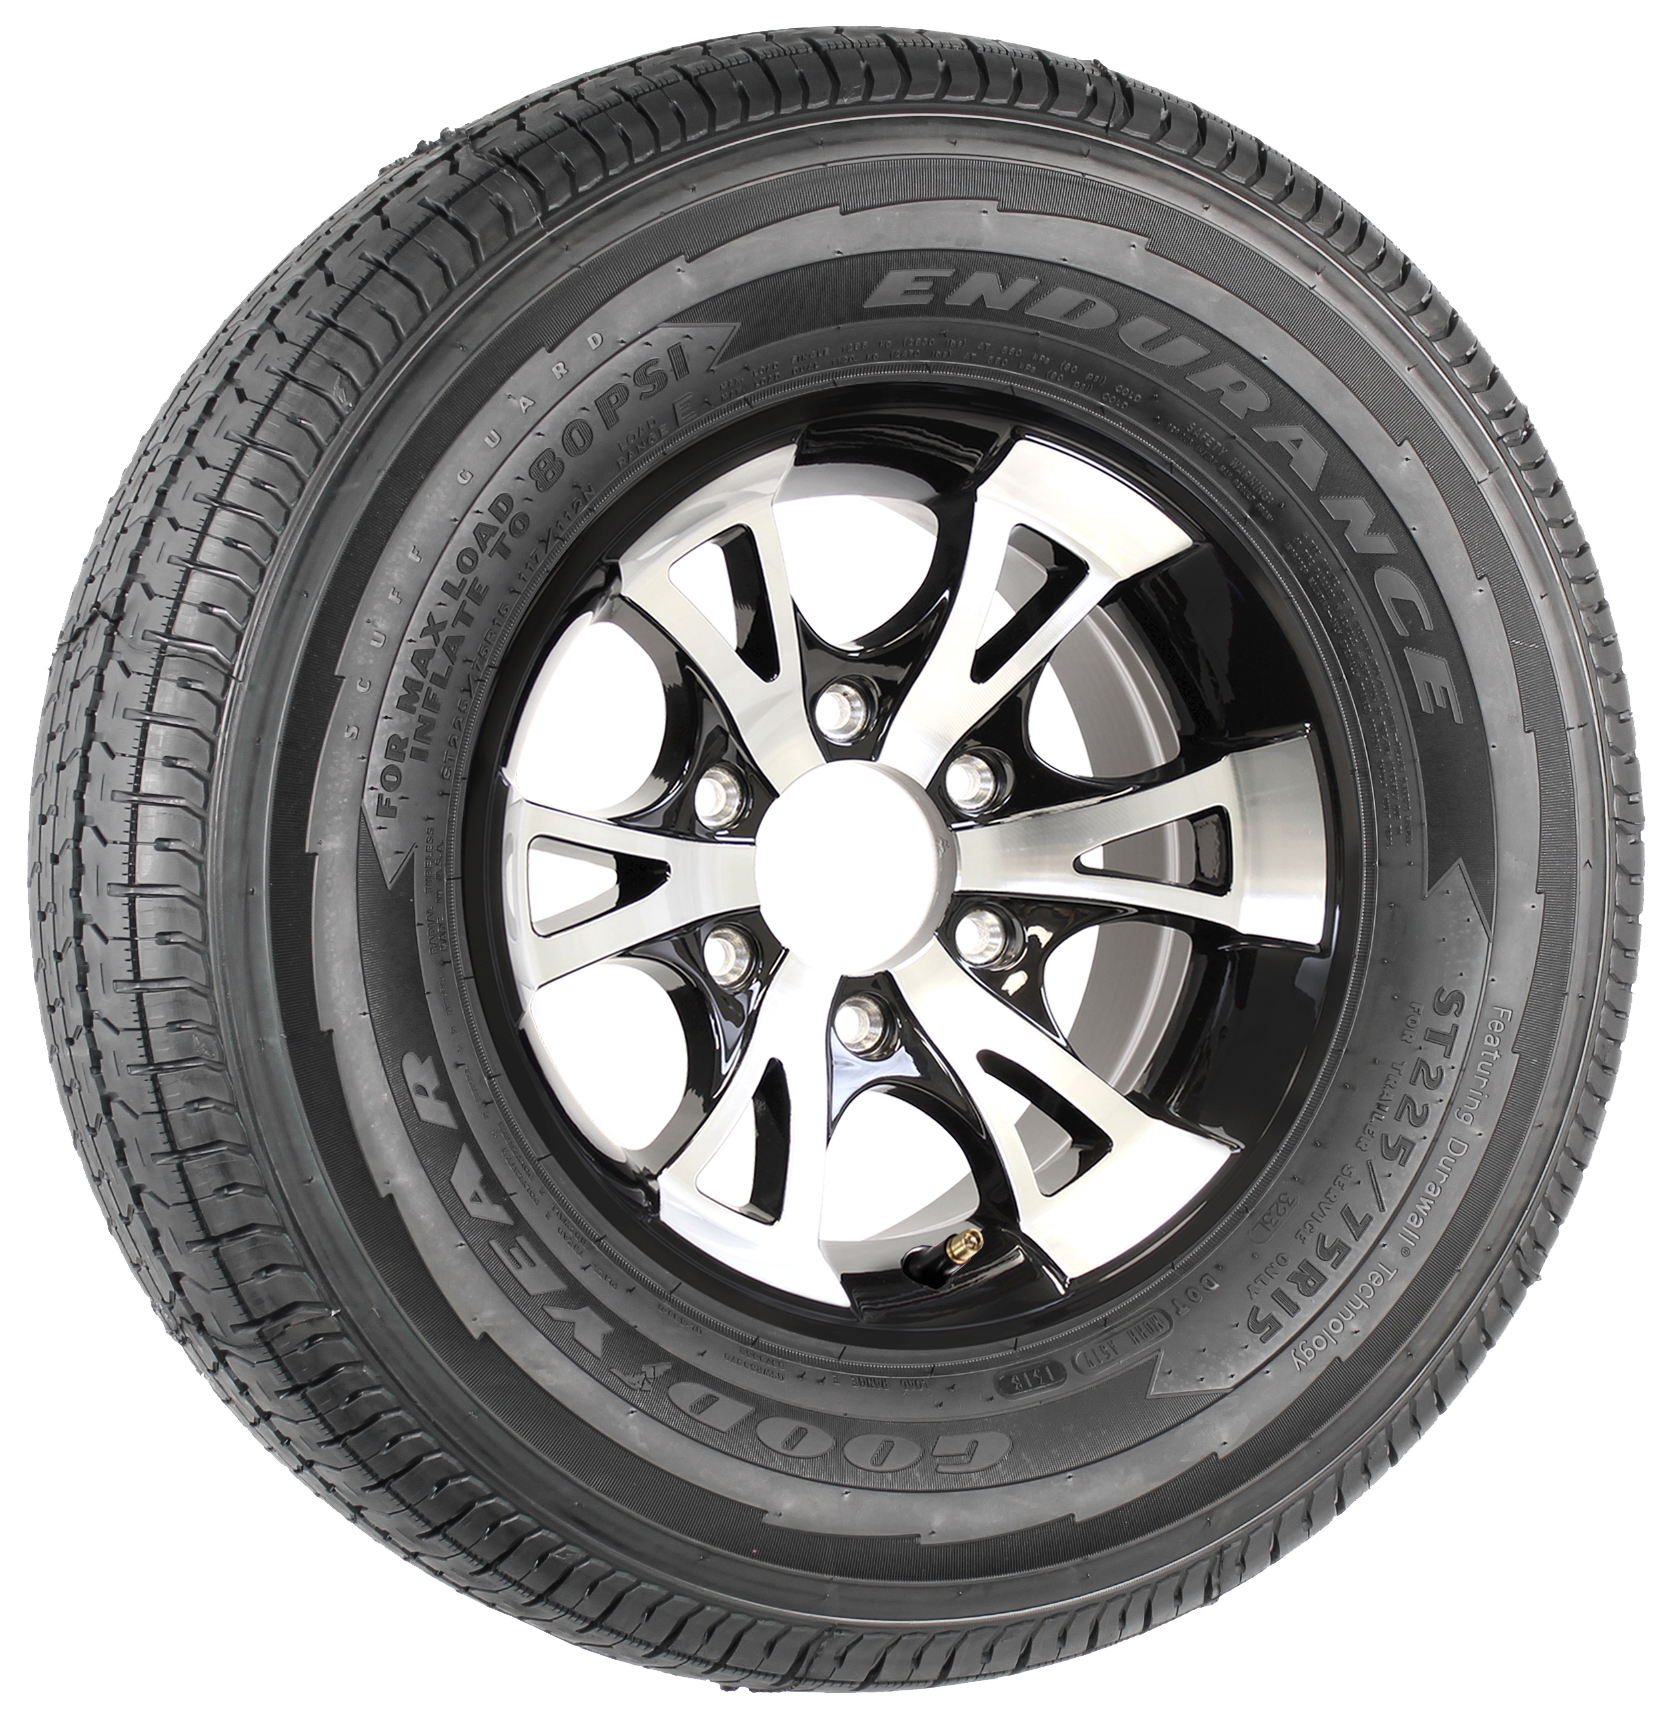 "Goodyear Endurance ST225/75R15 LRE Radial Tire on 15"" 6-Lug A1411 Black Aluminum Assembly Image"